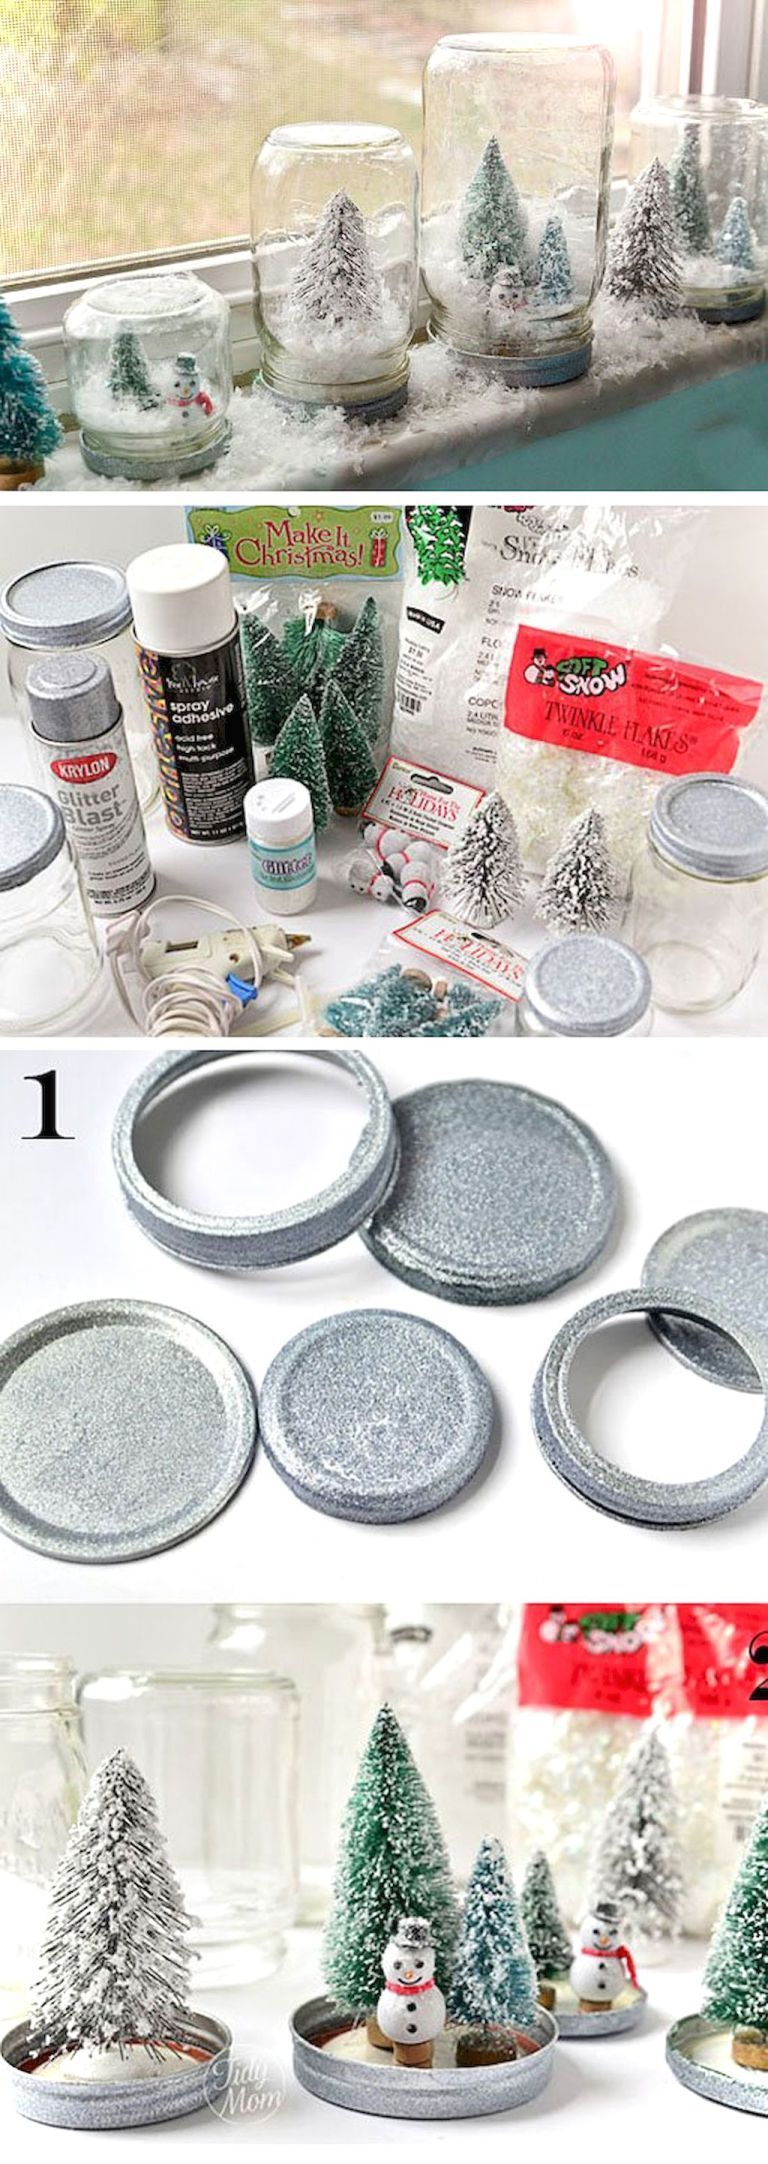 Easy diy christmas decorations ideas on a budget 46   Booth ...